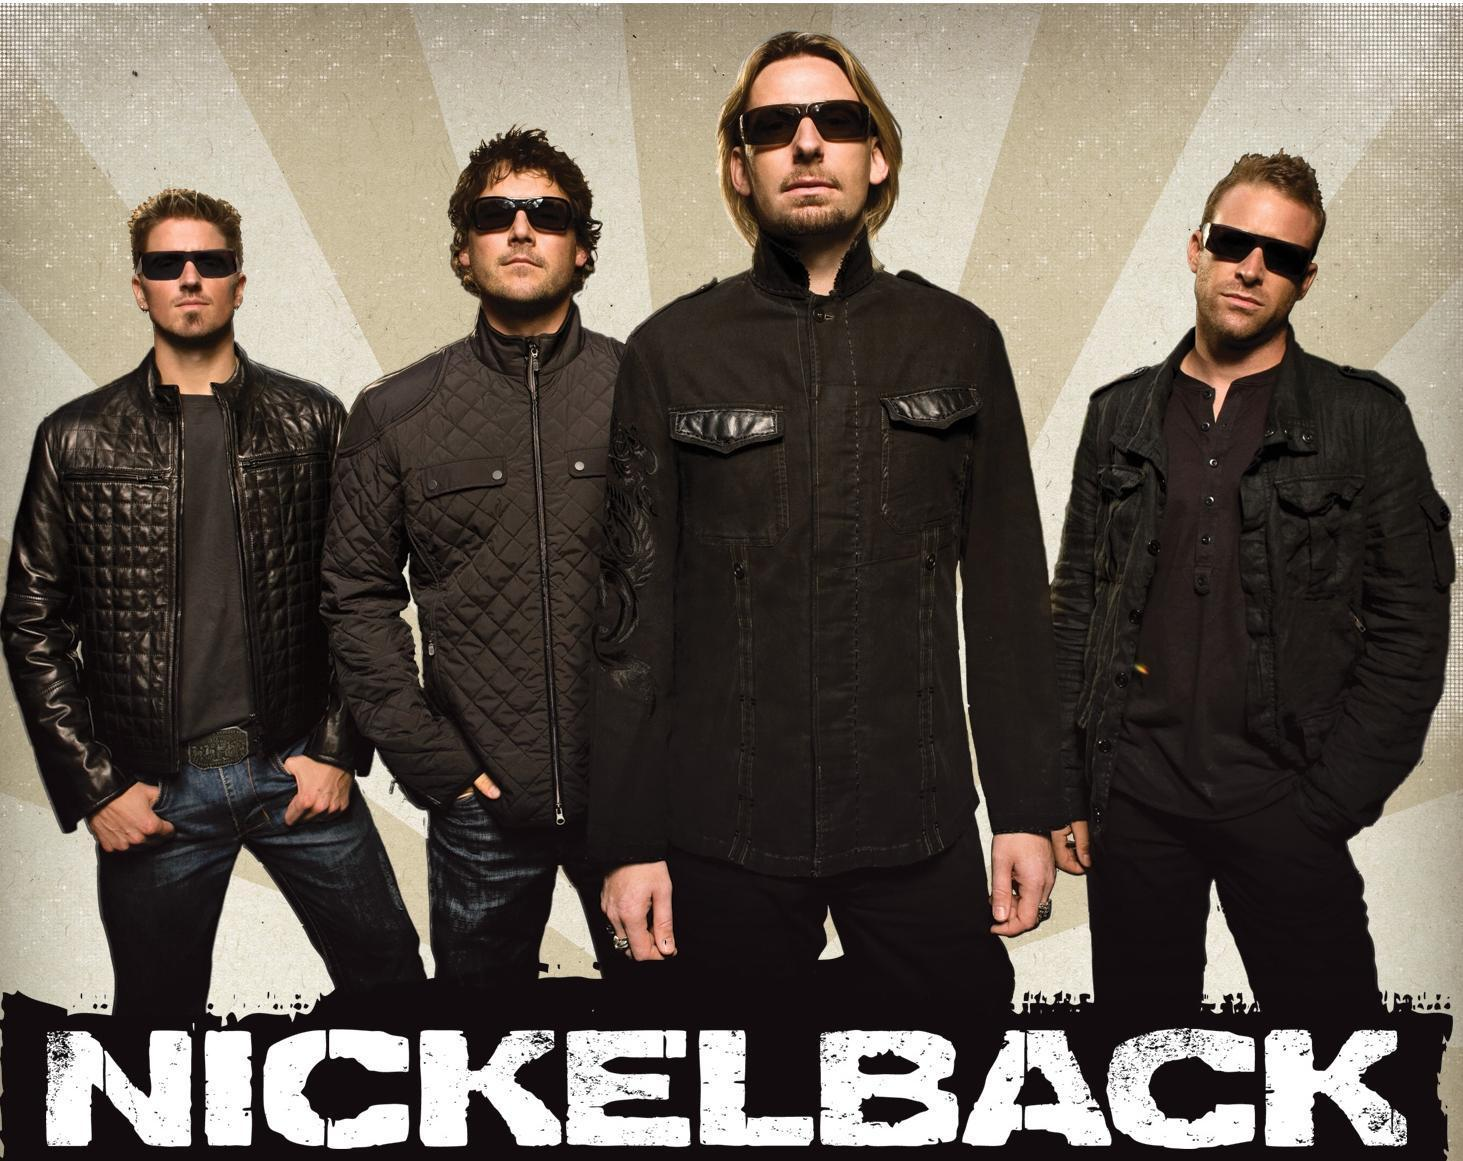 nickelback wallpapers – 1463×1161 High Definition Wallpapers